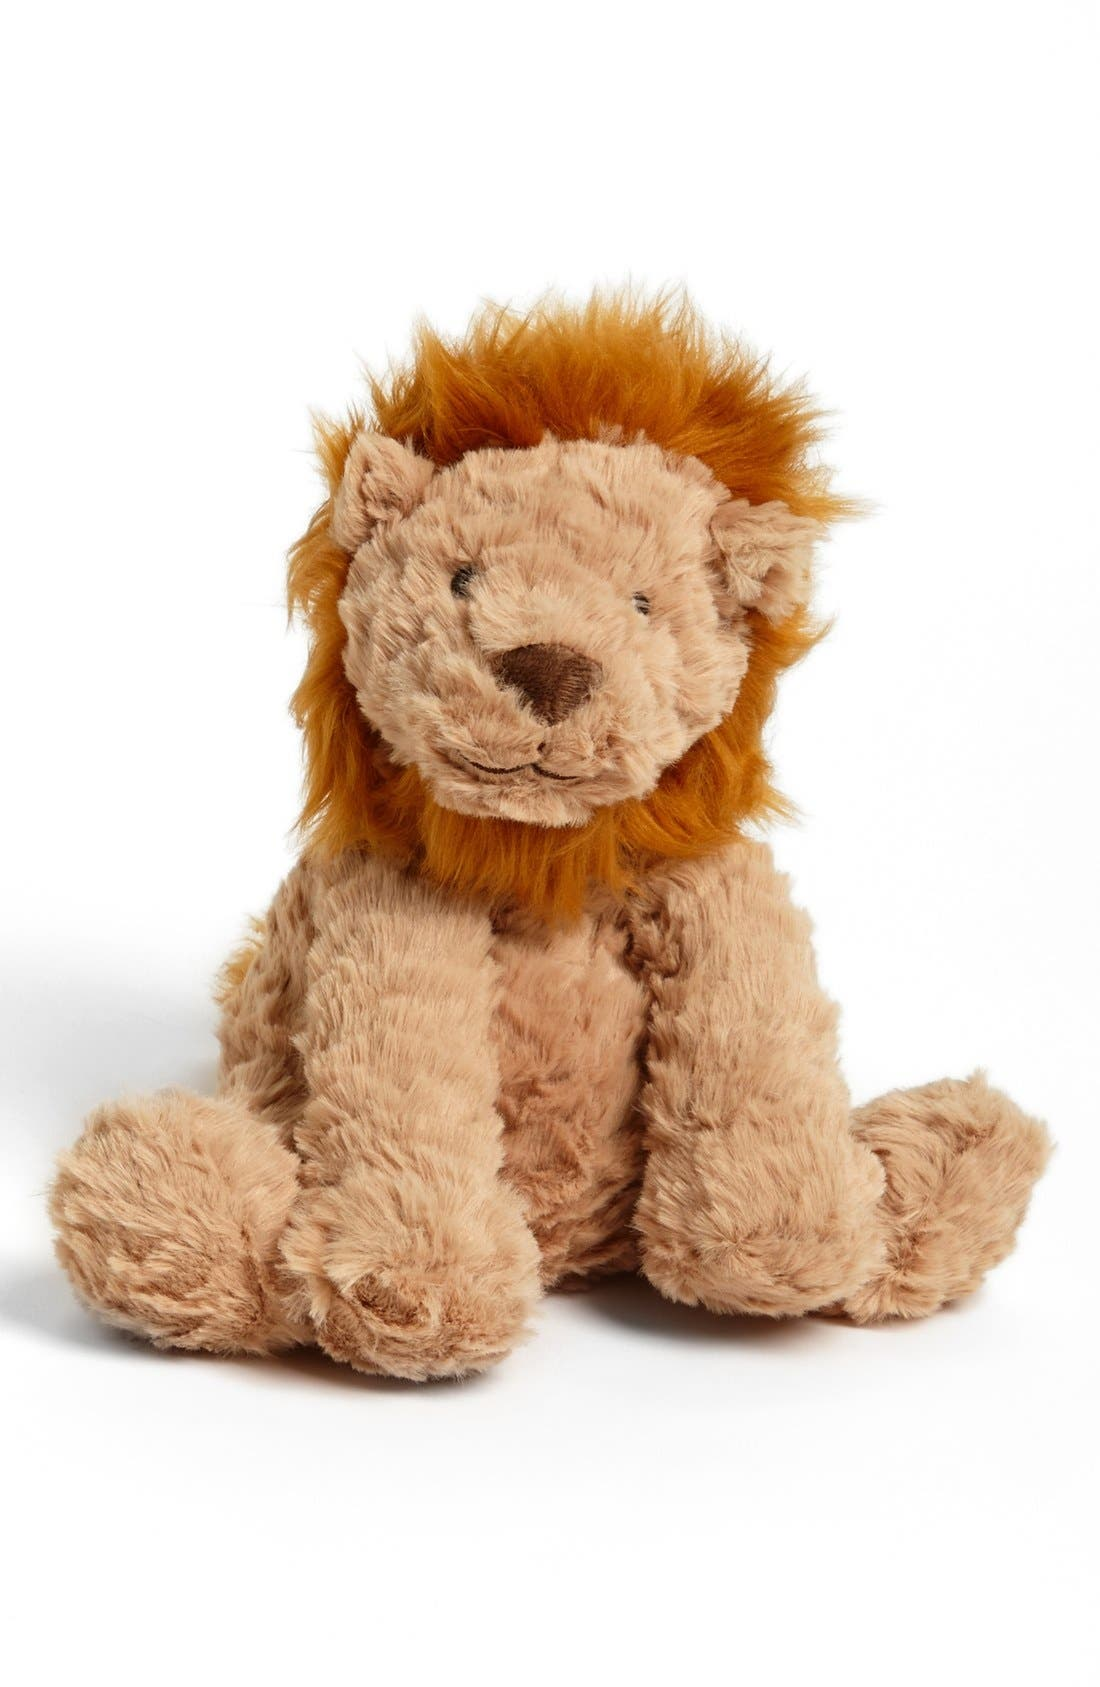 Alternate Image 1 Selected - Jellycat 'Fuddlewuddle Lion' Stuffed Animal